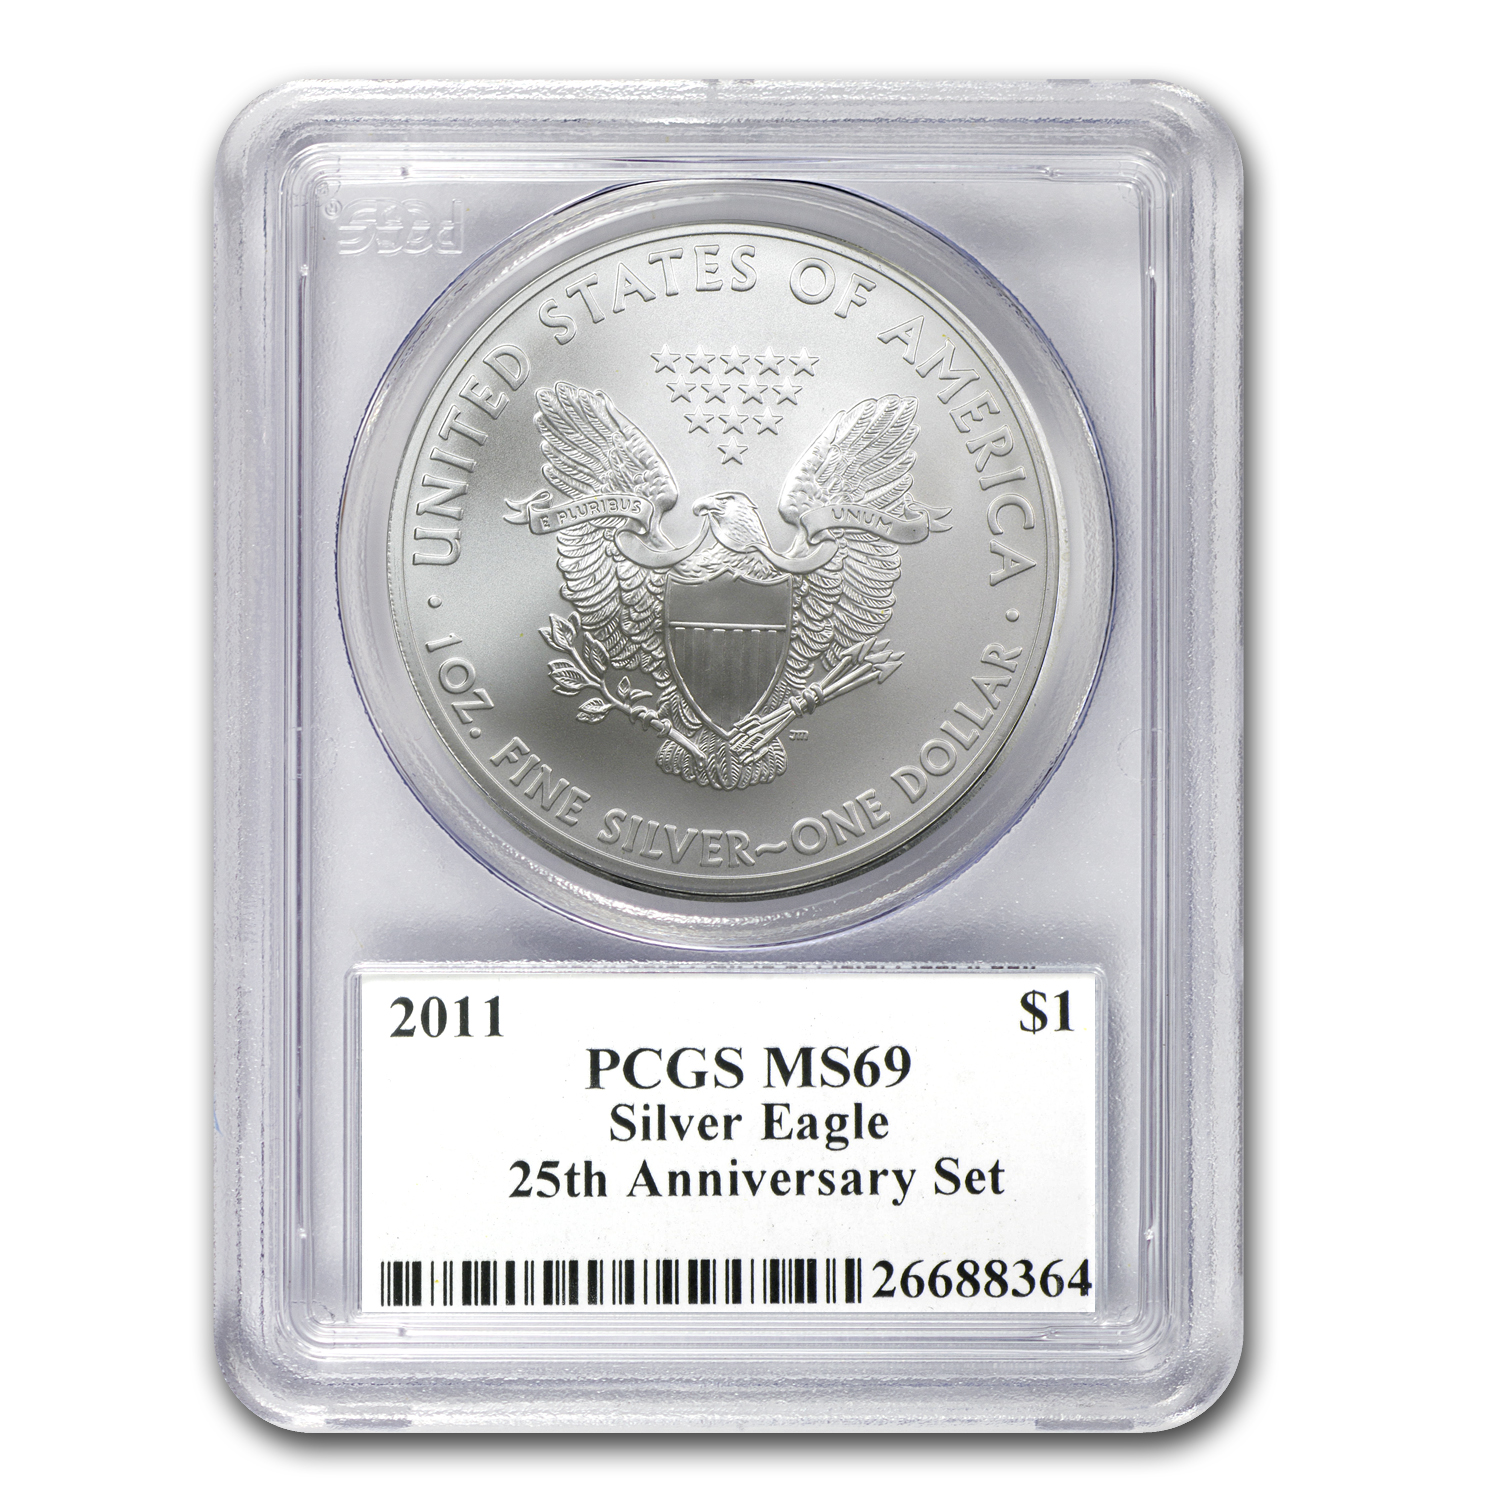 2011 Silver Eagle 25th Anniv MS-69 PCGS John Mercanti